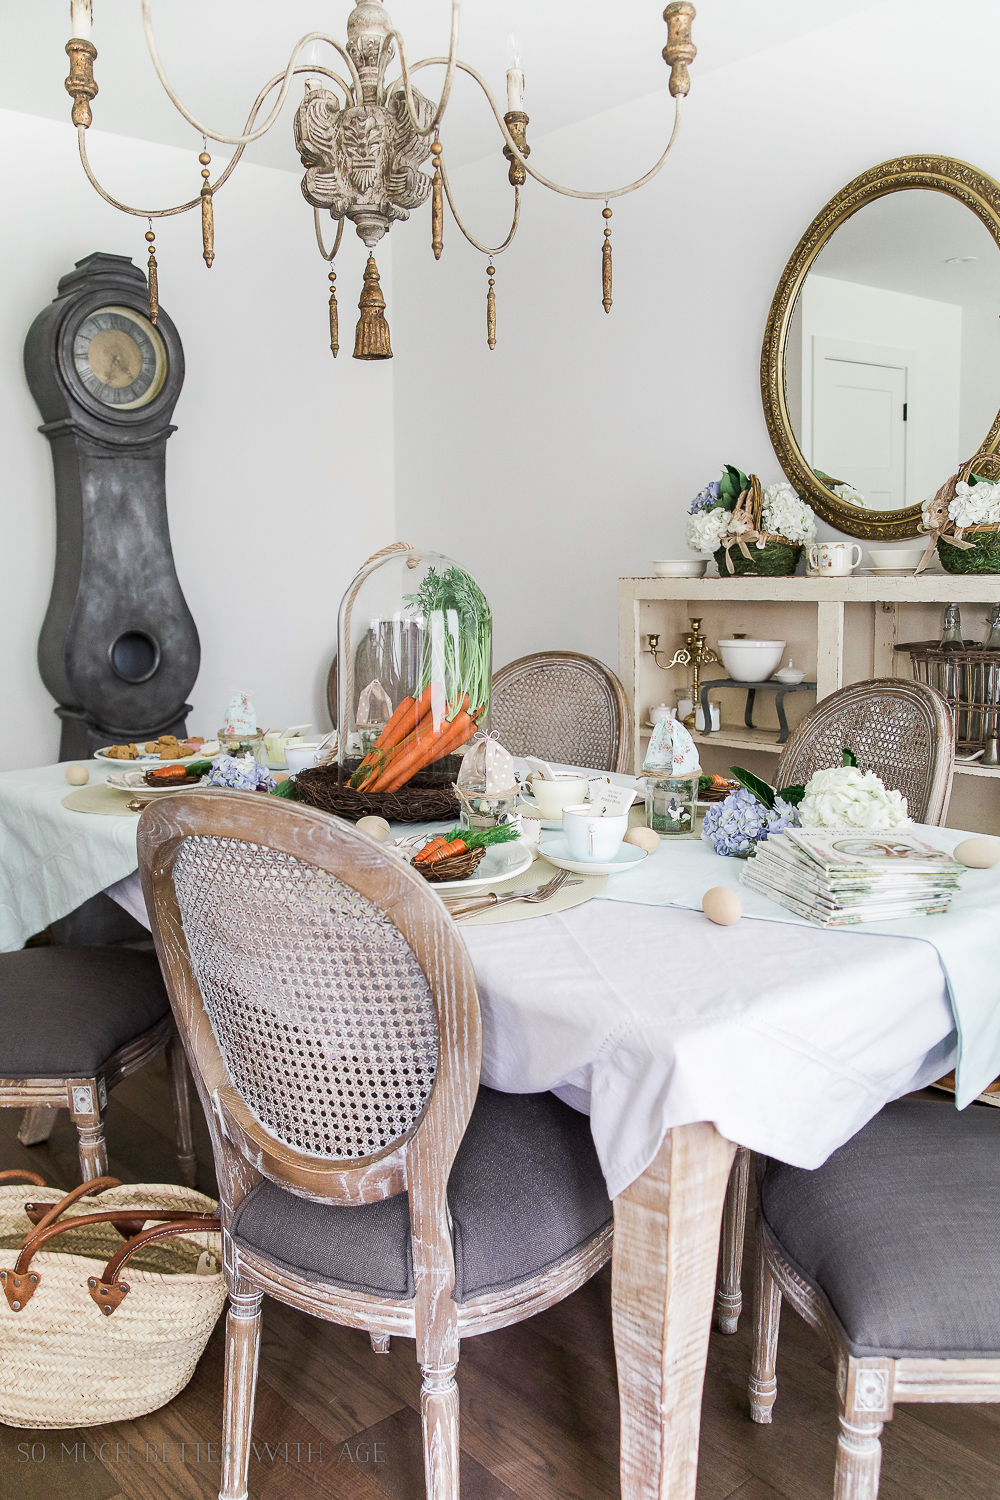 12 Creative Easter Decorating Ideas/Peter Rabbit inspired Easter table - So Much Better With Age